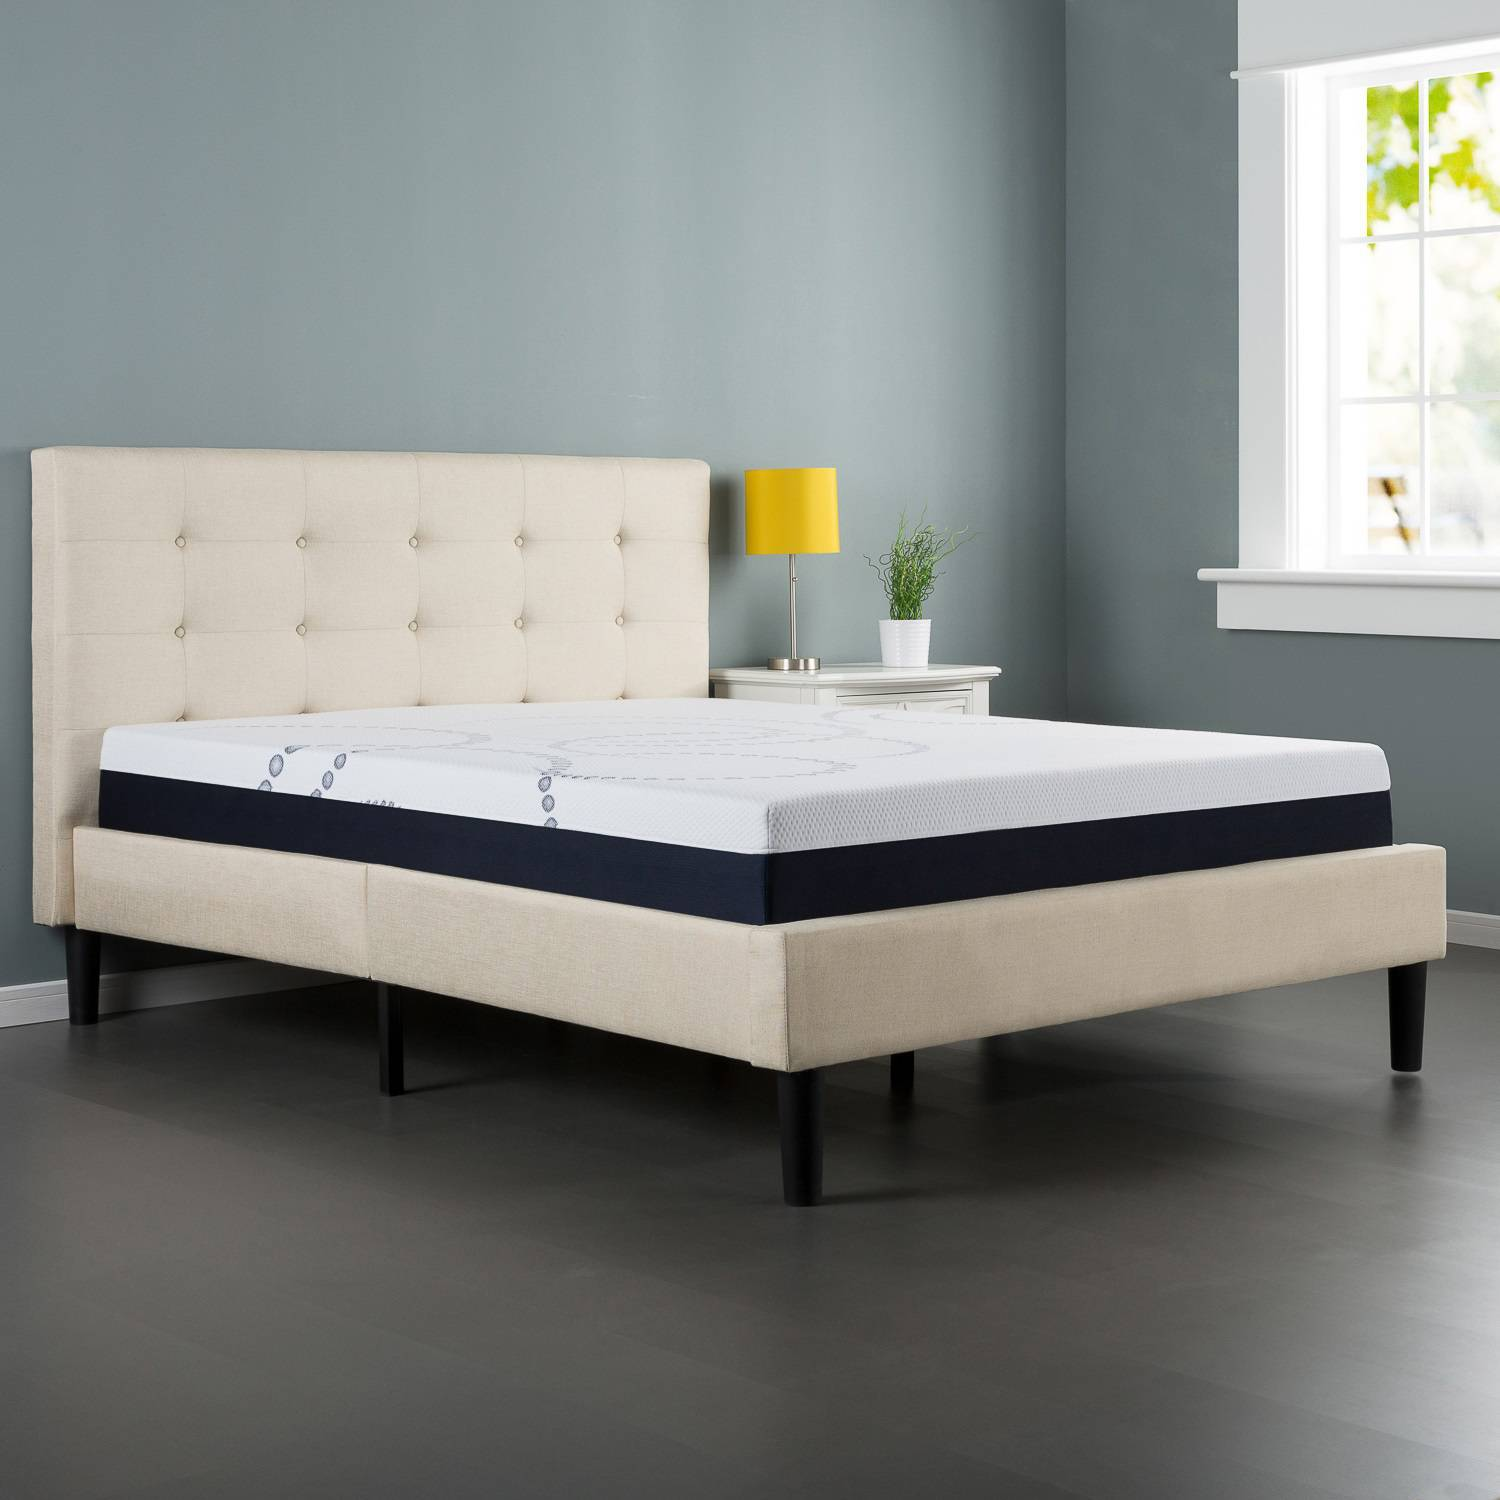 Zinus Upholstered On Tufted Platform Bed With Headboard And Wooden Slats Com